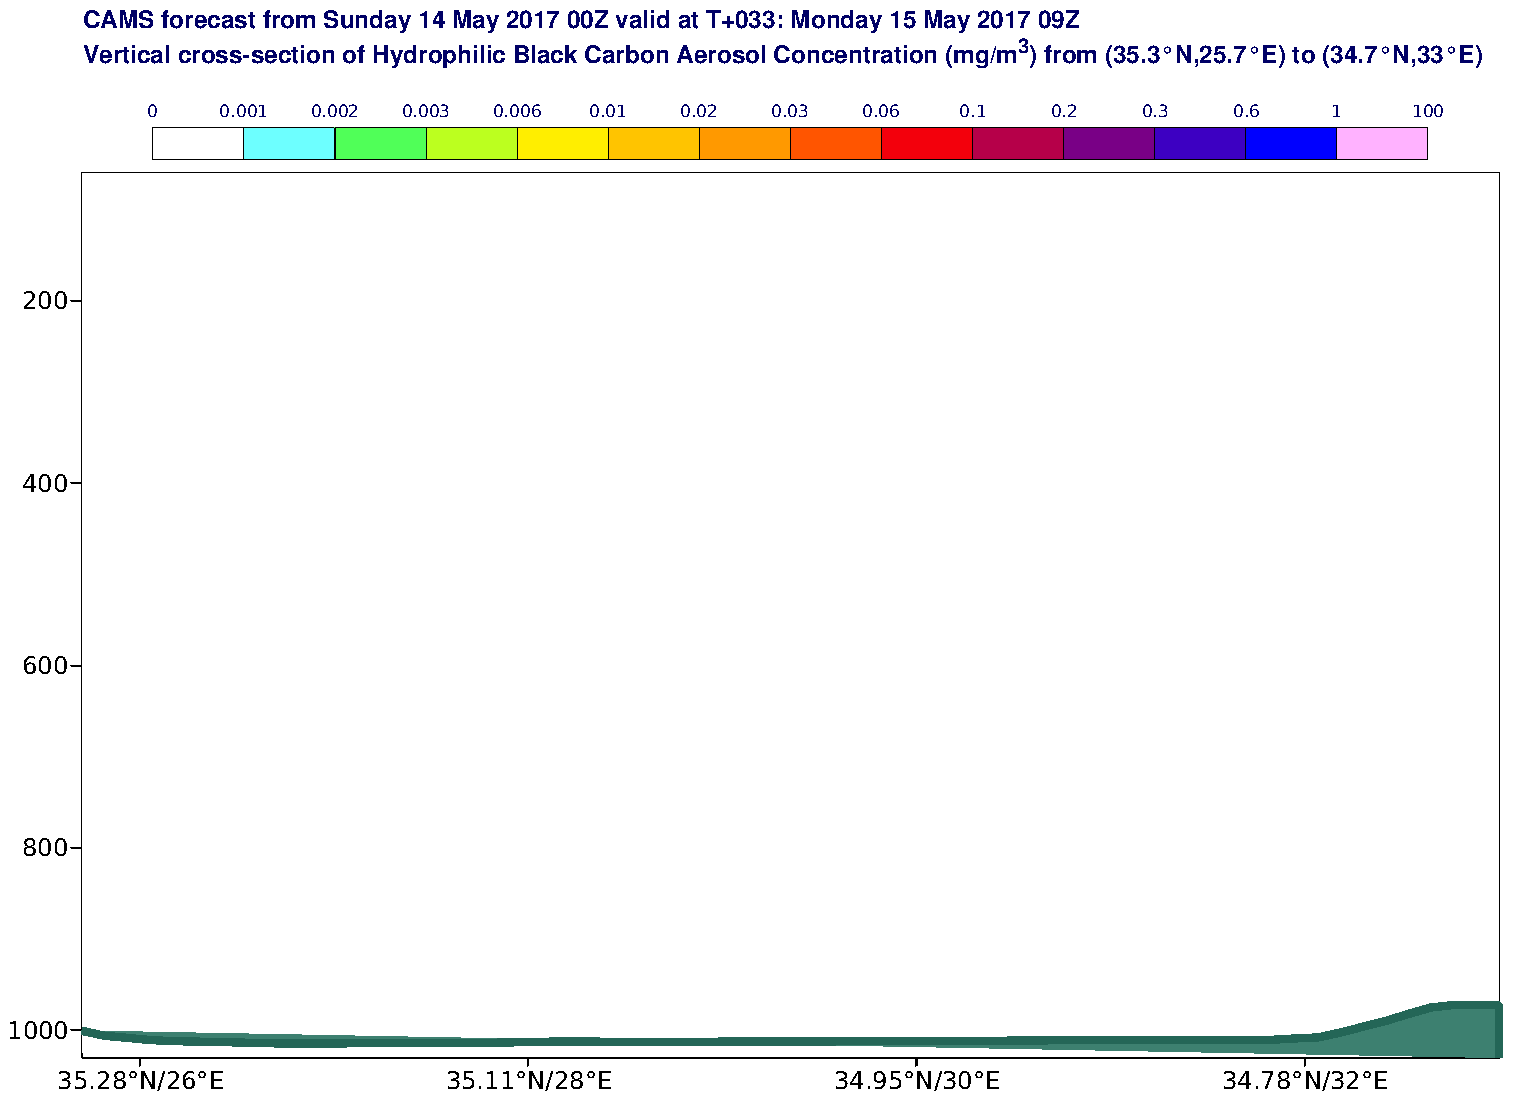 Vertical cross-section of Hydrophilic Black Carbon Aerosol Concentration (mg/m3) valid at T33 - 2017-05-15 09:00